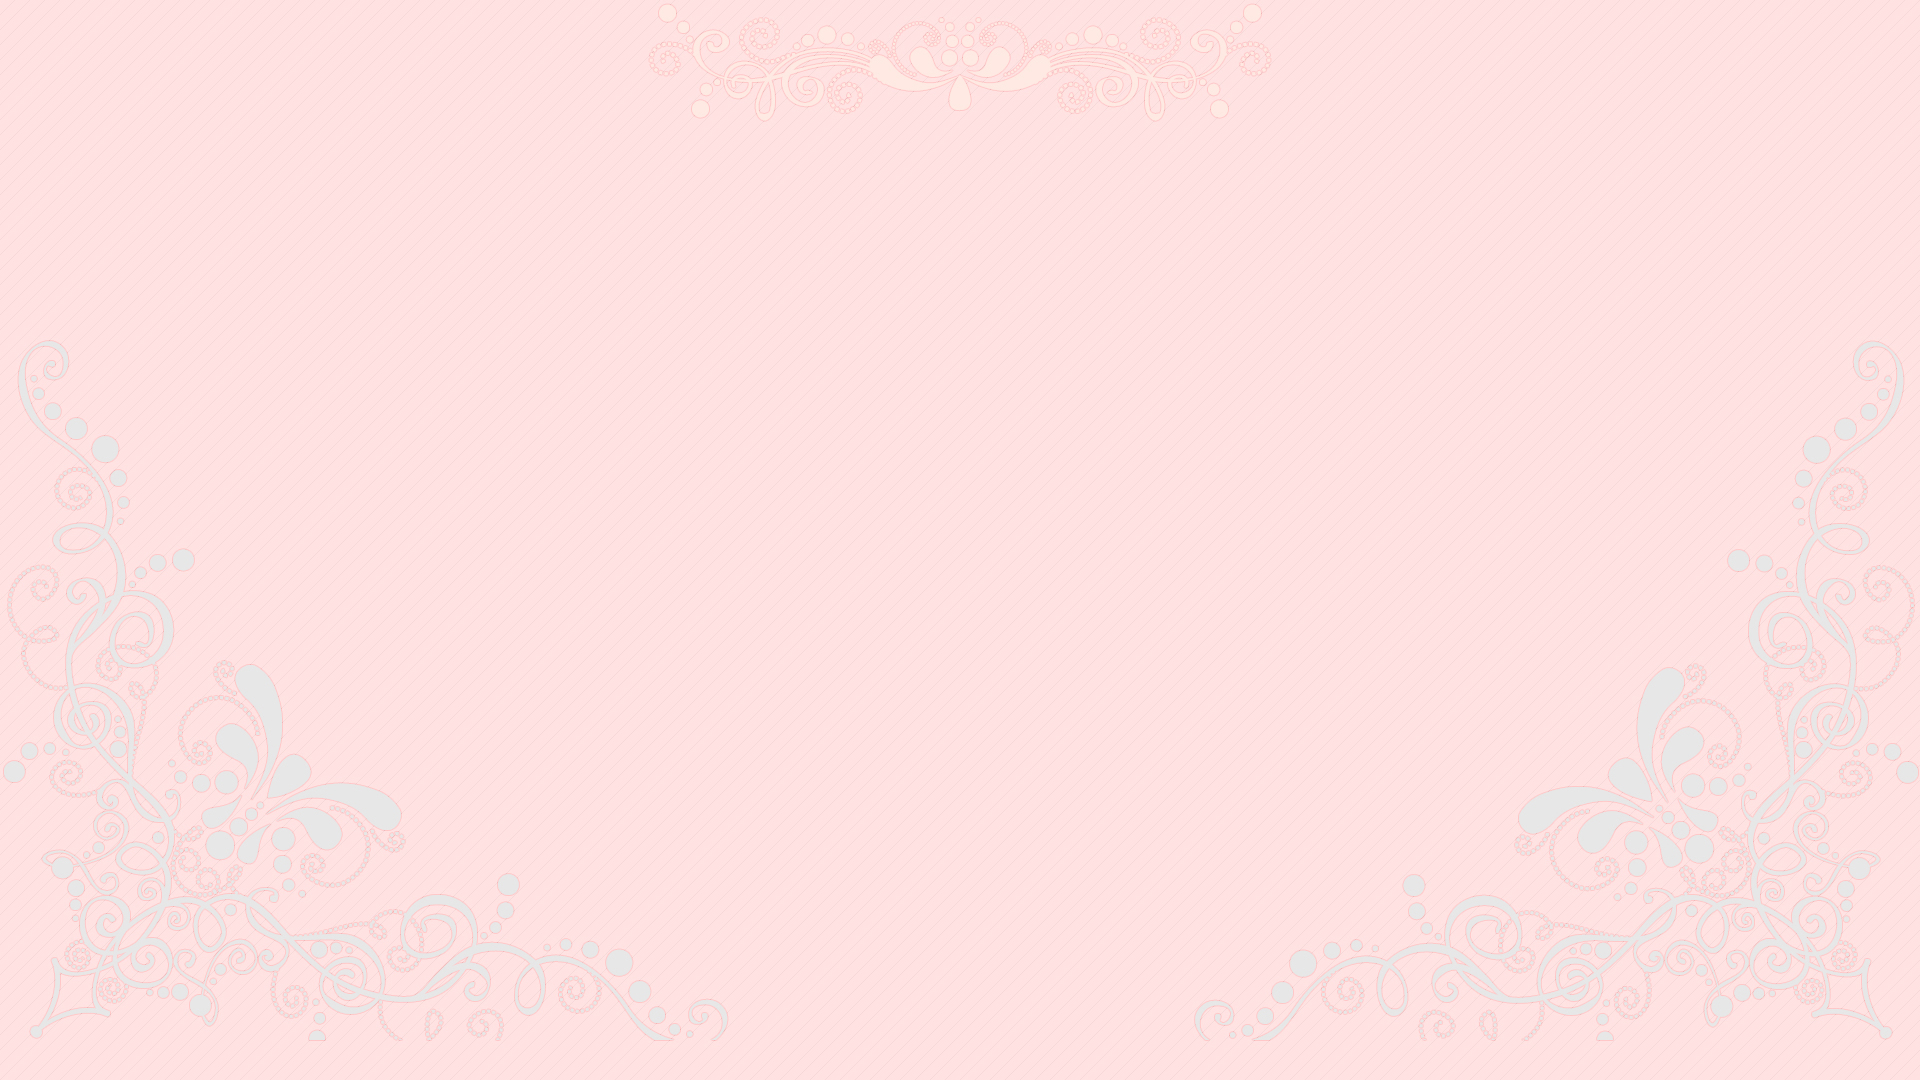 Pastel Pink Background wallpaper   994156 1920x1080